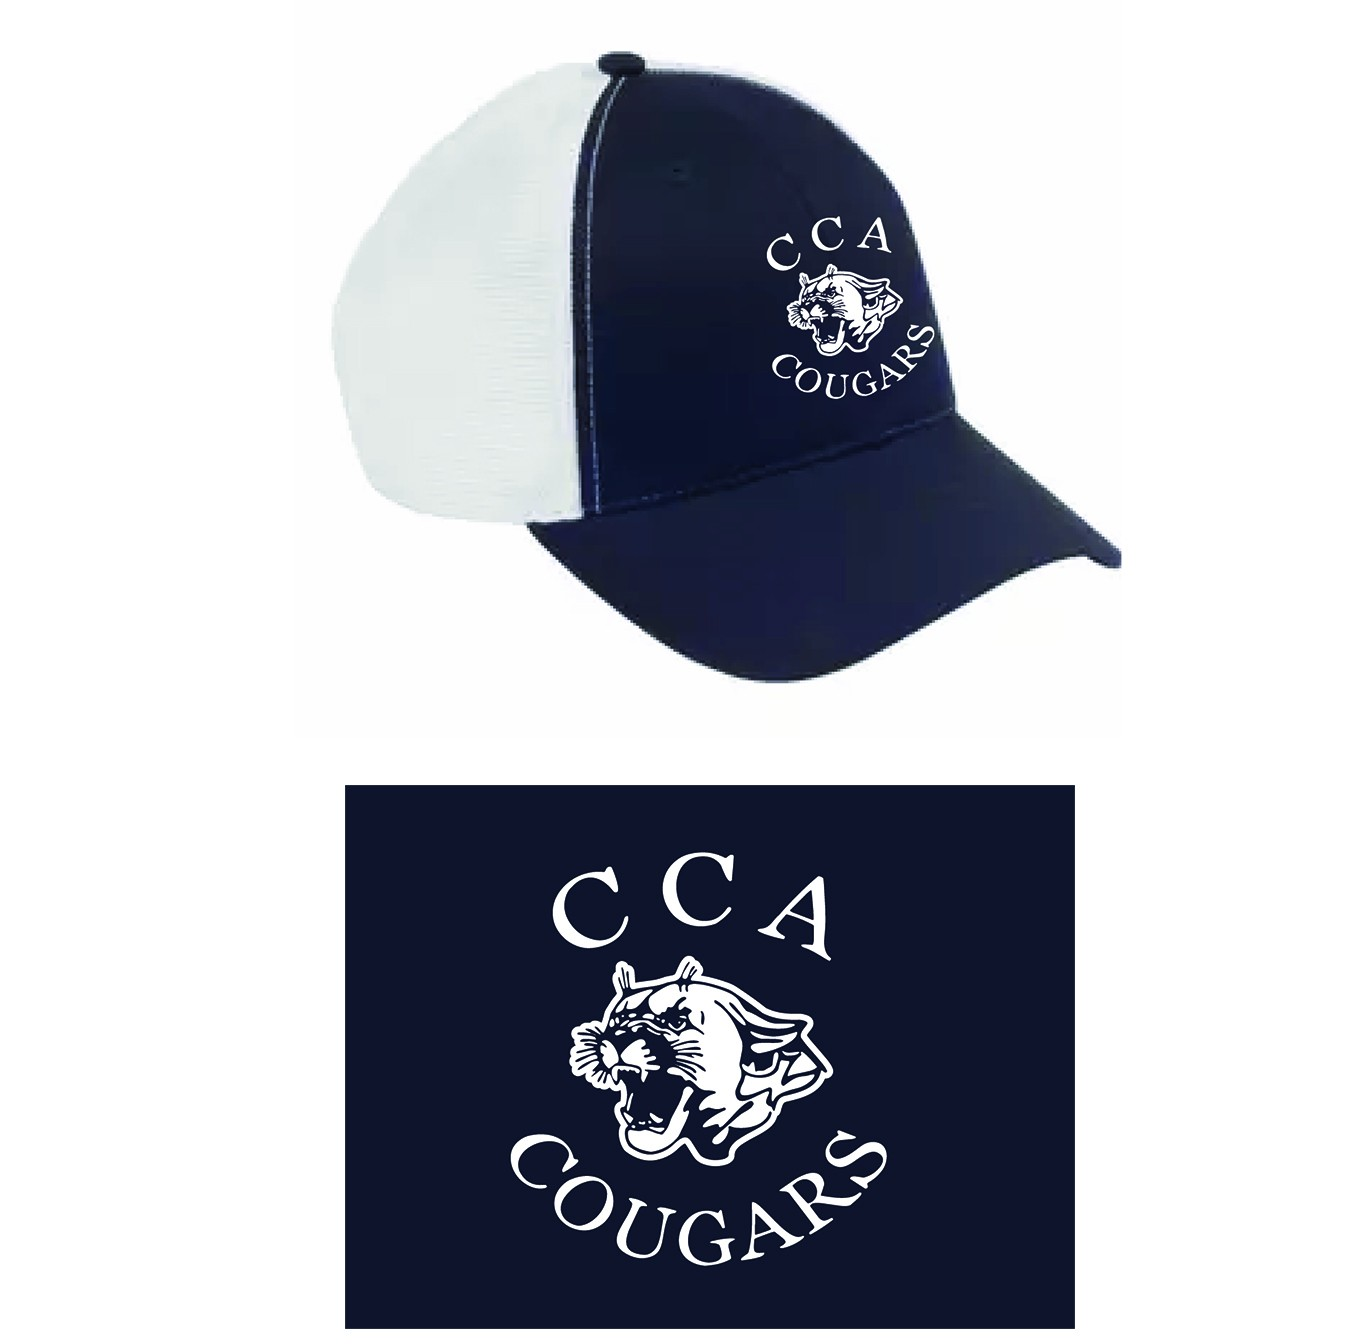 Calvary Chapel Academy Big Accessories Old School Baseball Cap With Technical Mesh